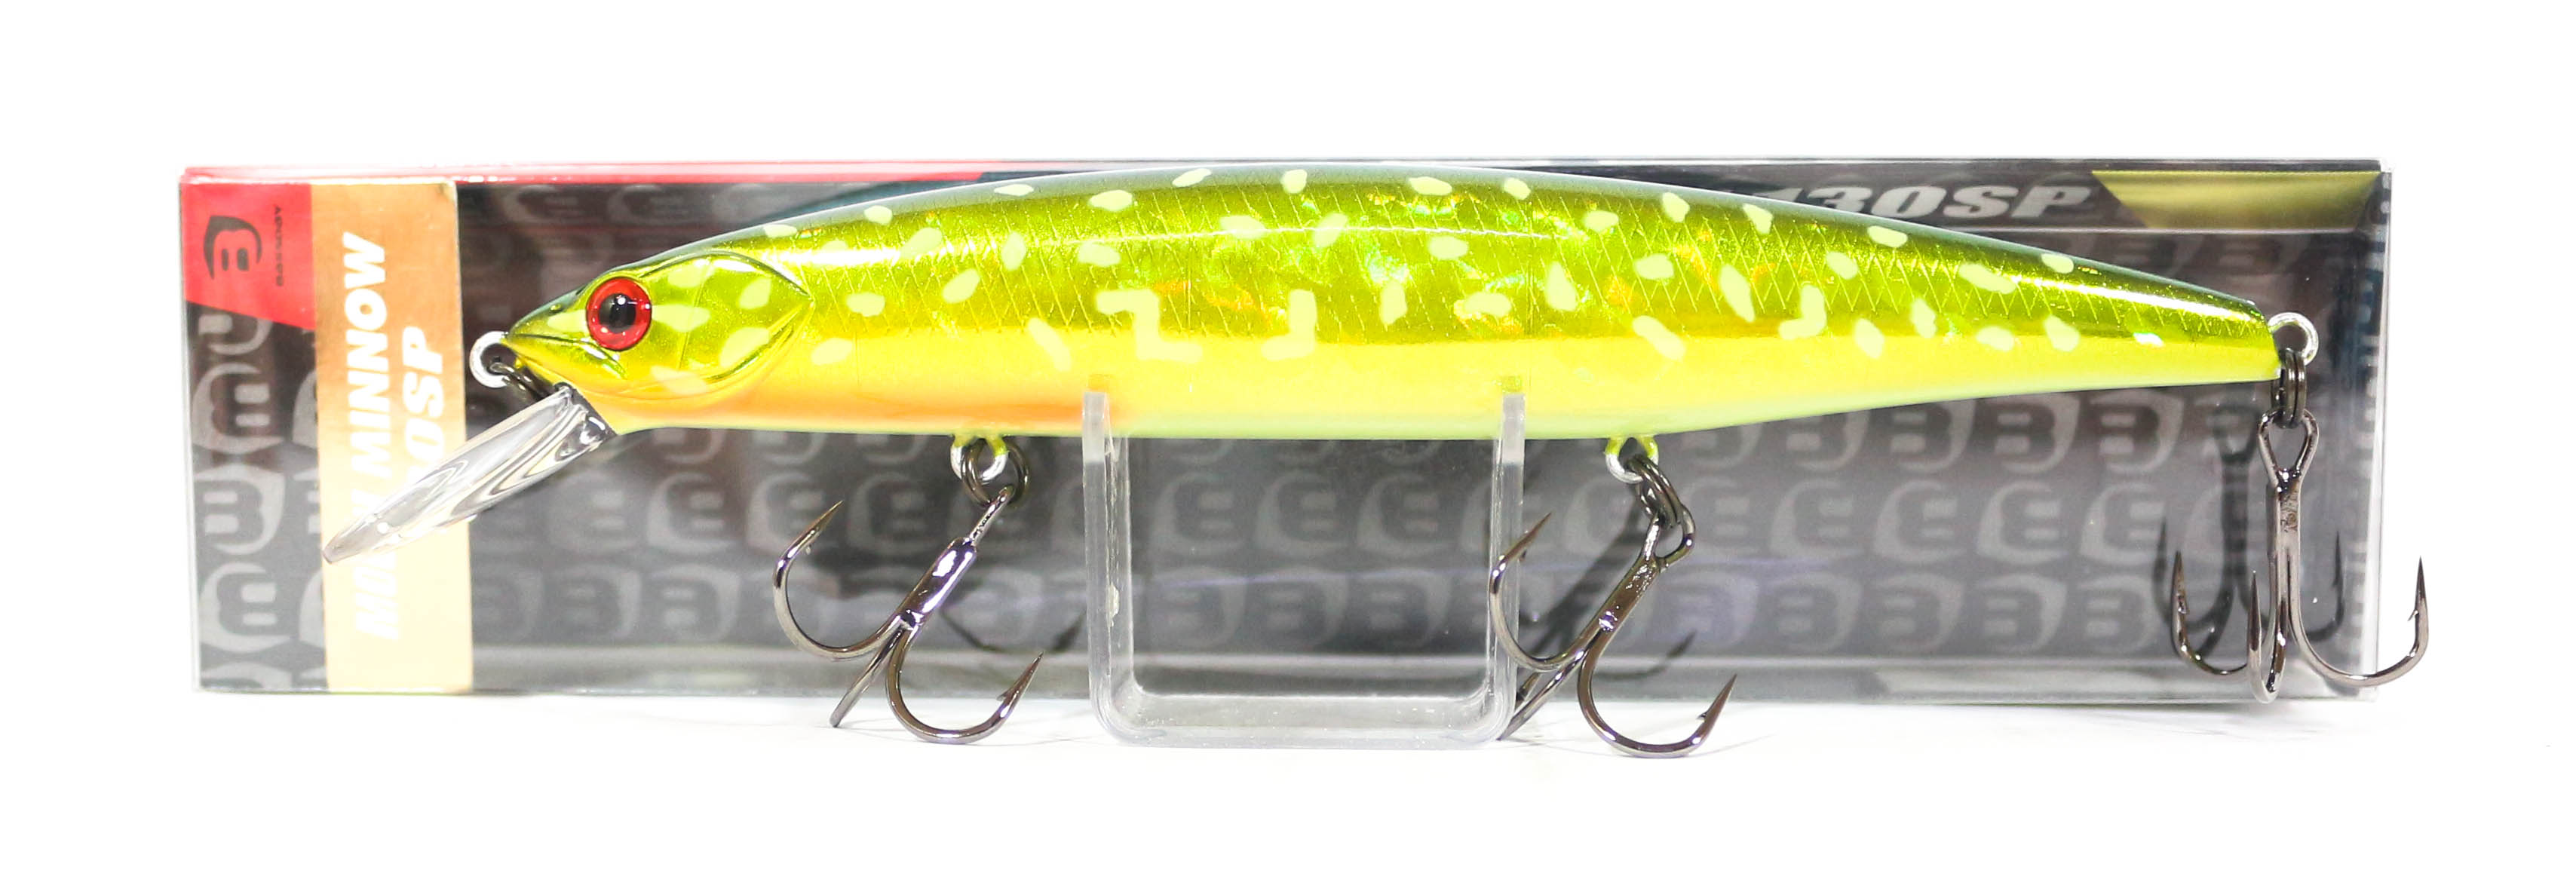 Bassday Mogul Minnow 130SP Suspend Lure 22.6 grams FL-901 (8111)